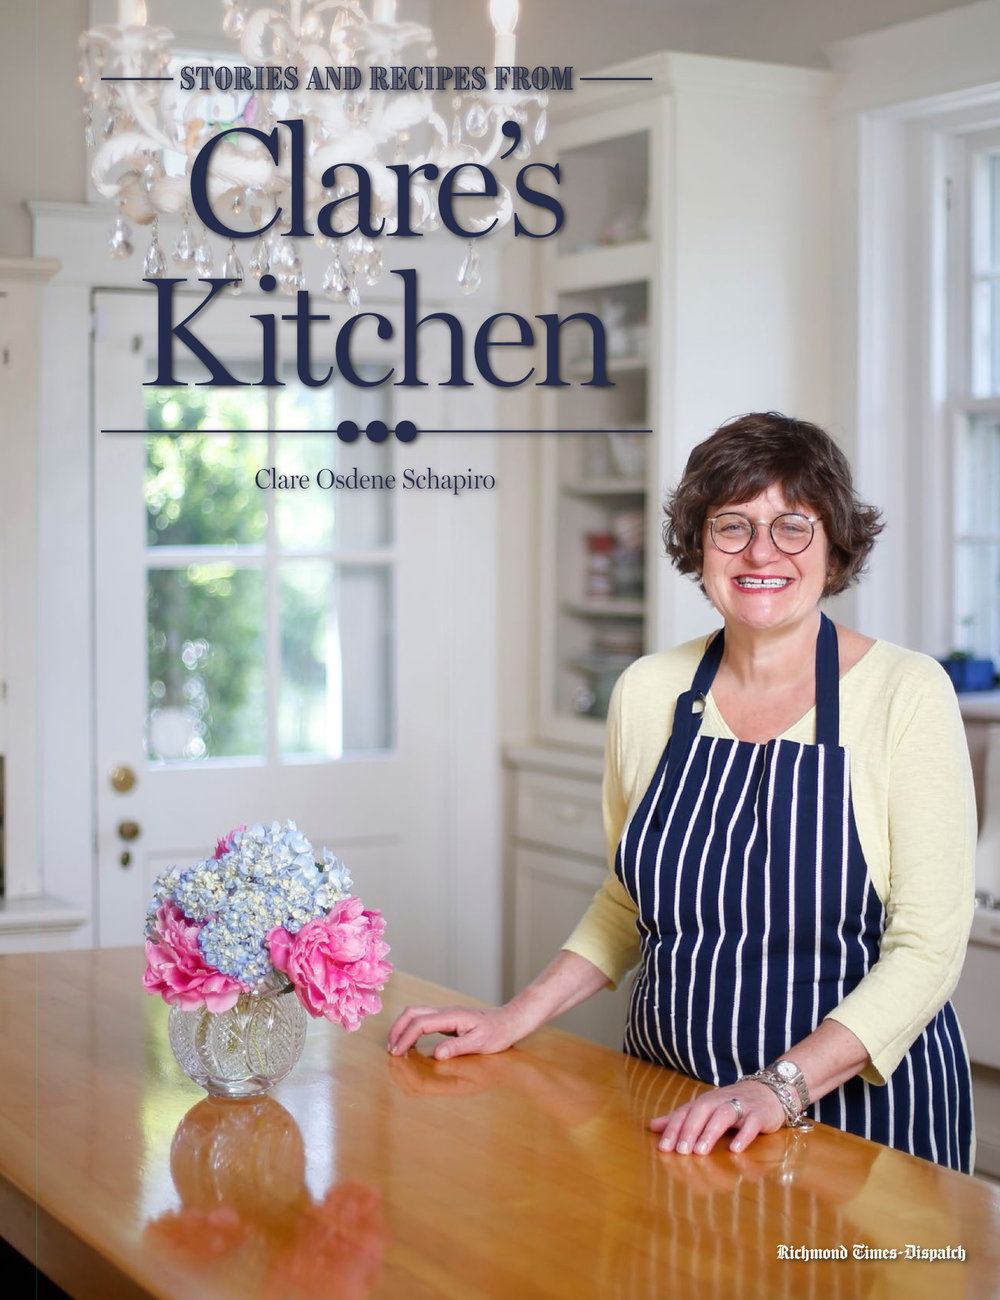 Clares_Kitchen FINAL.jpg